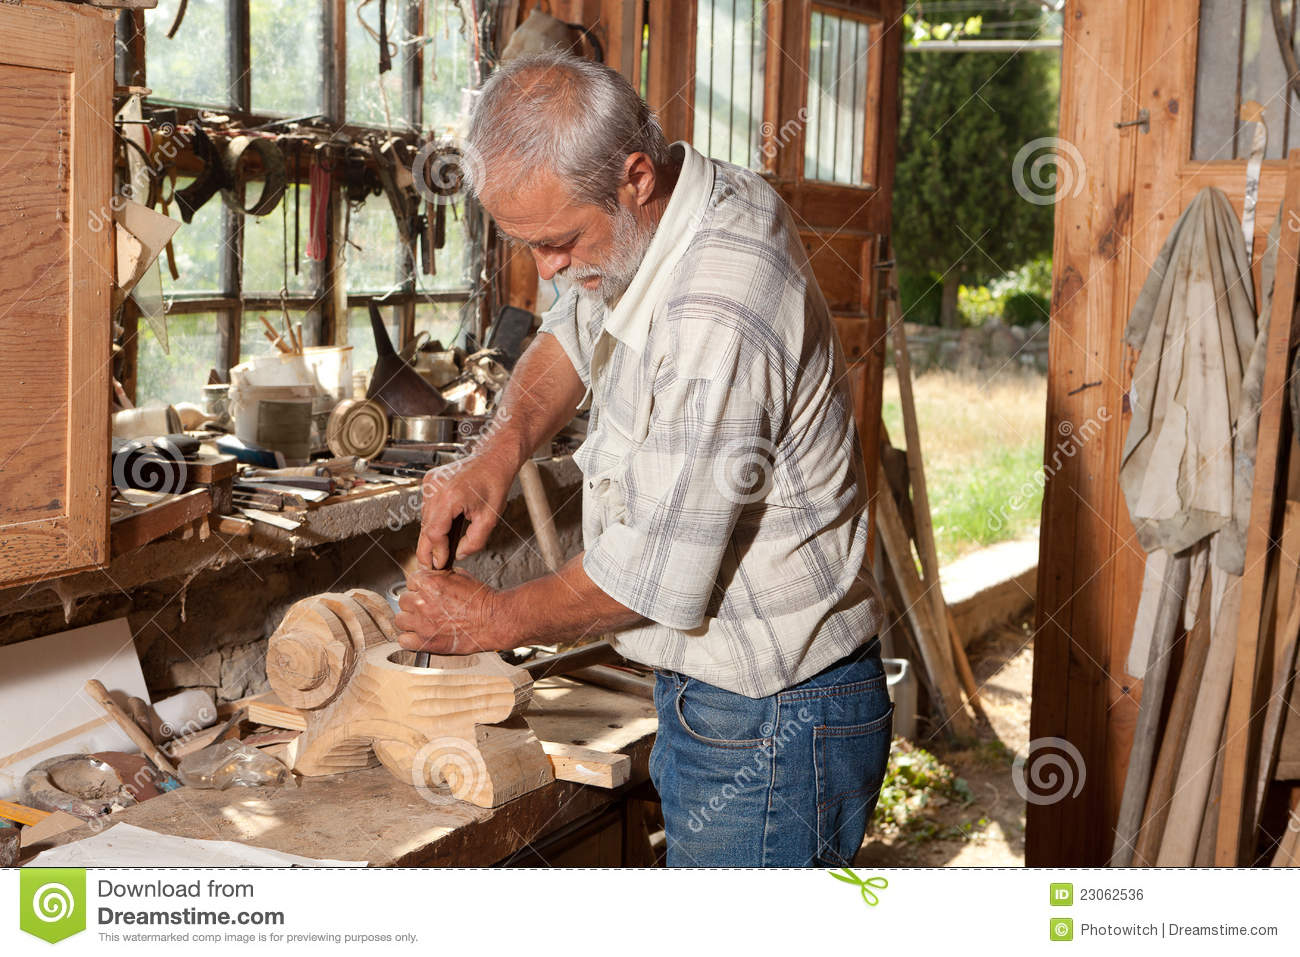 Old Shed And Skilled Carpenter Stock Photo Image 23062536